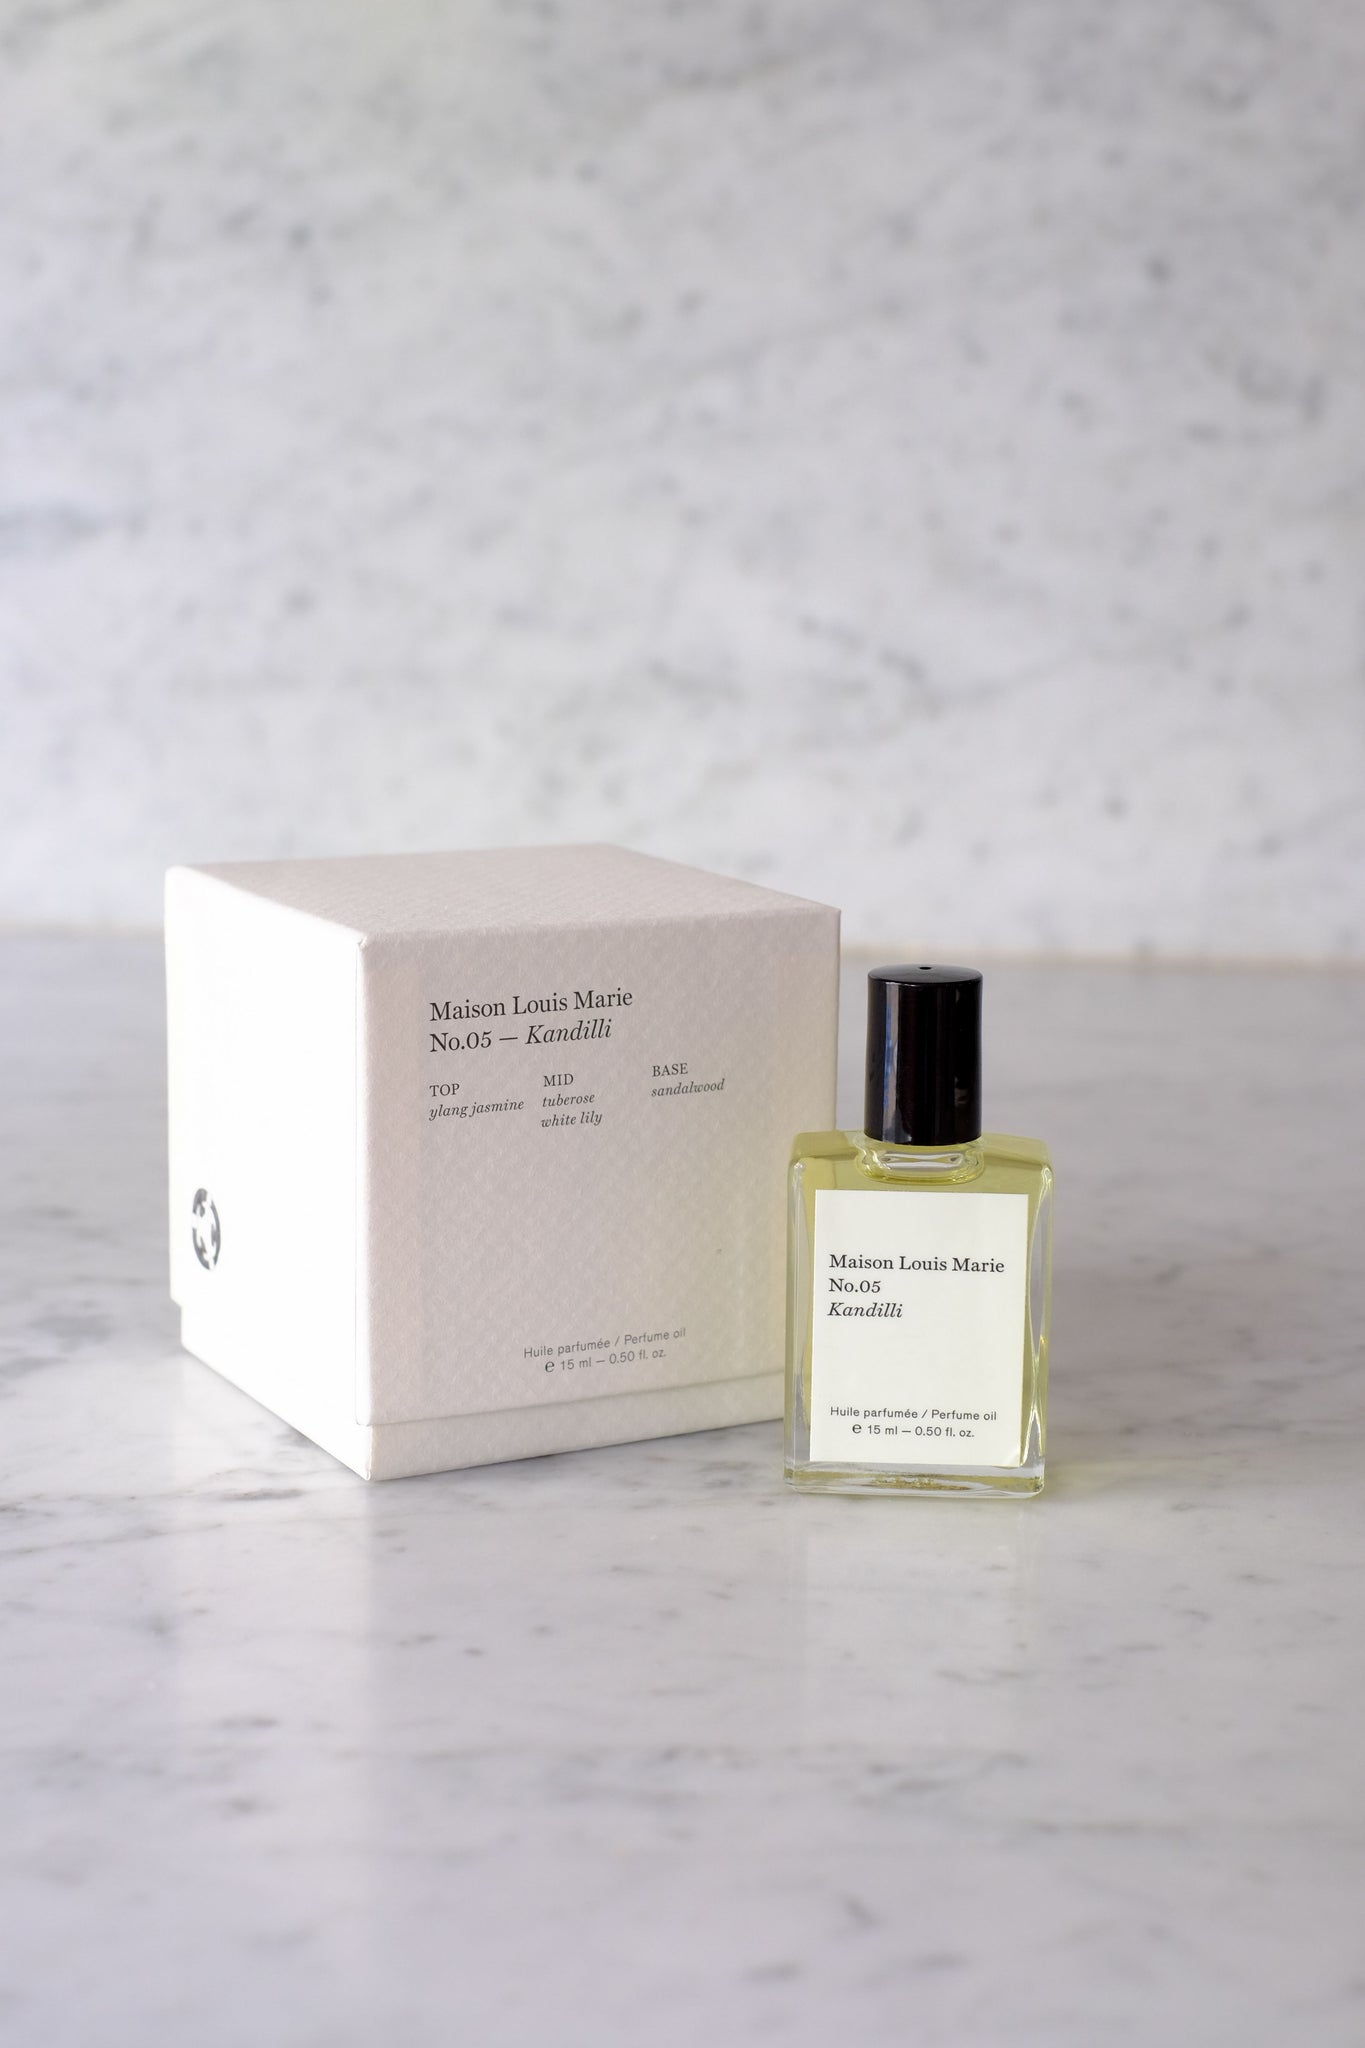 Maison Louis Maire :: Fragrance No.5 Kandilli